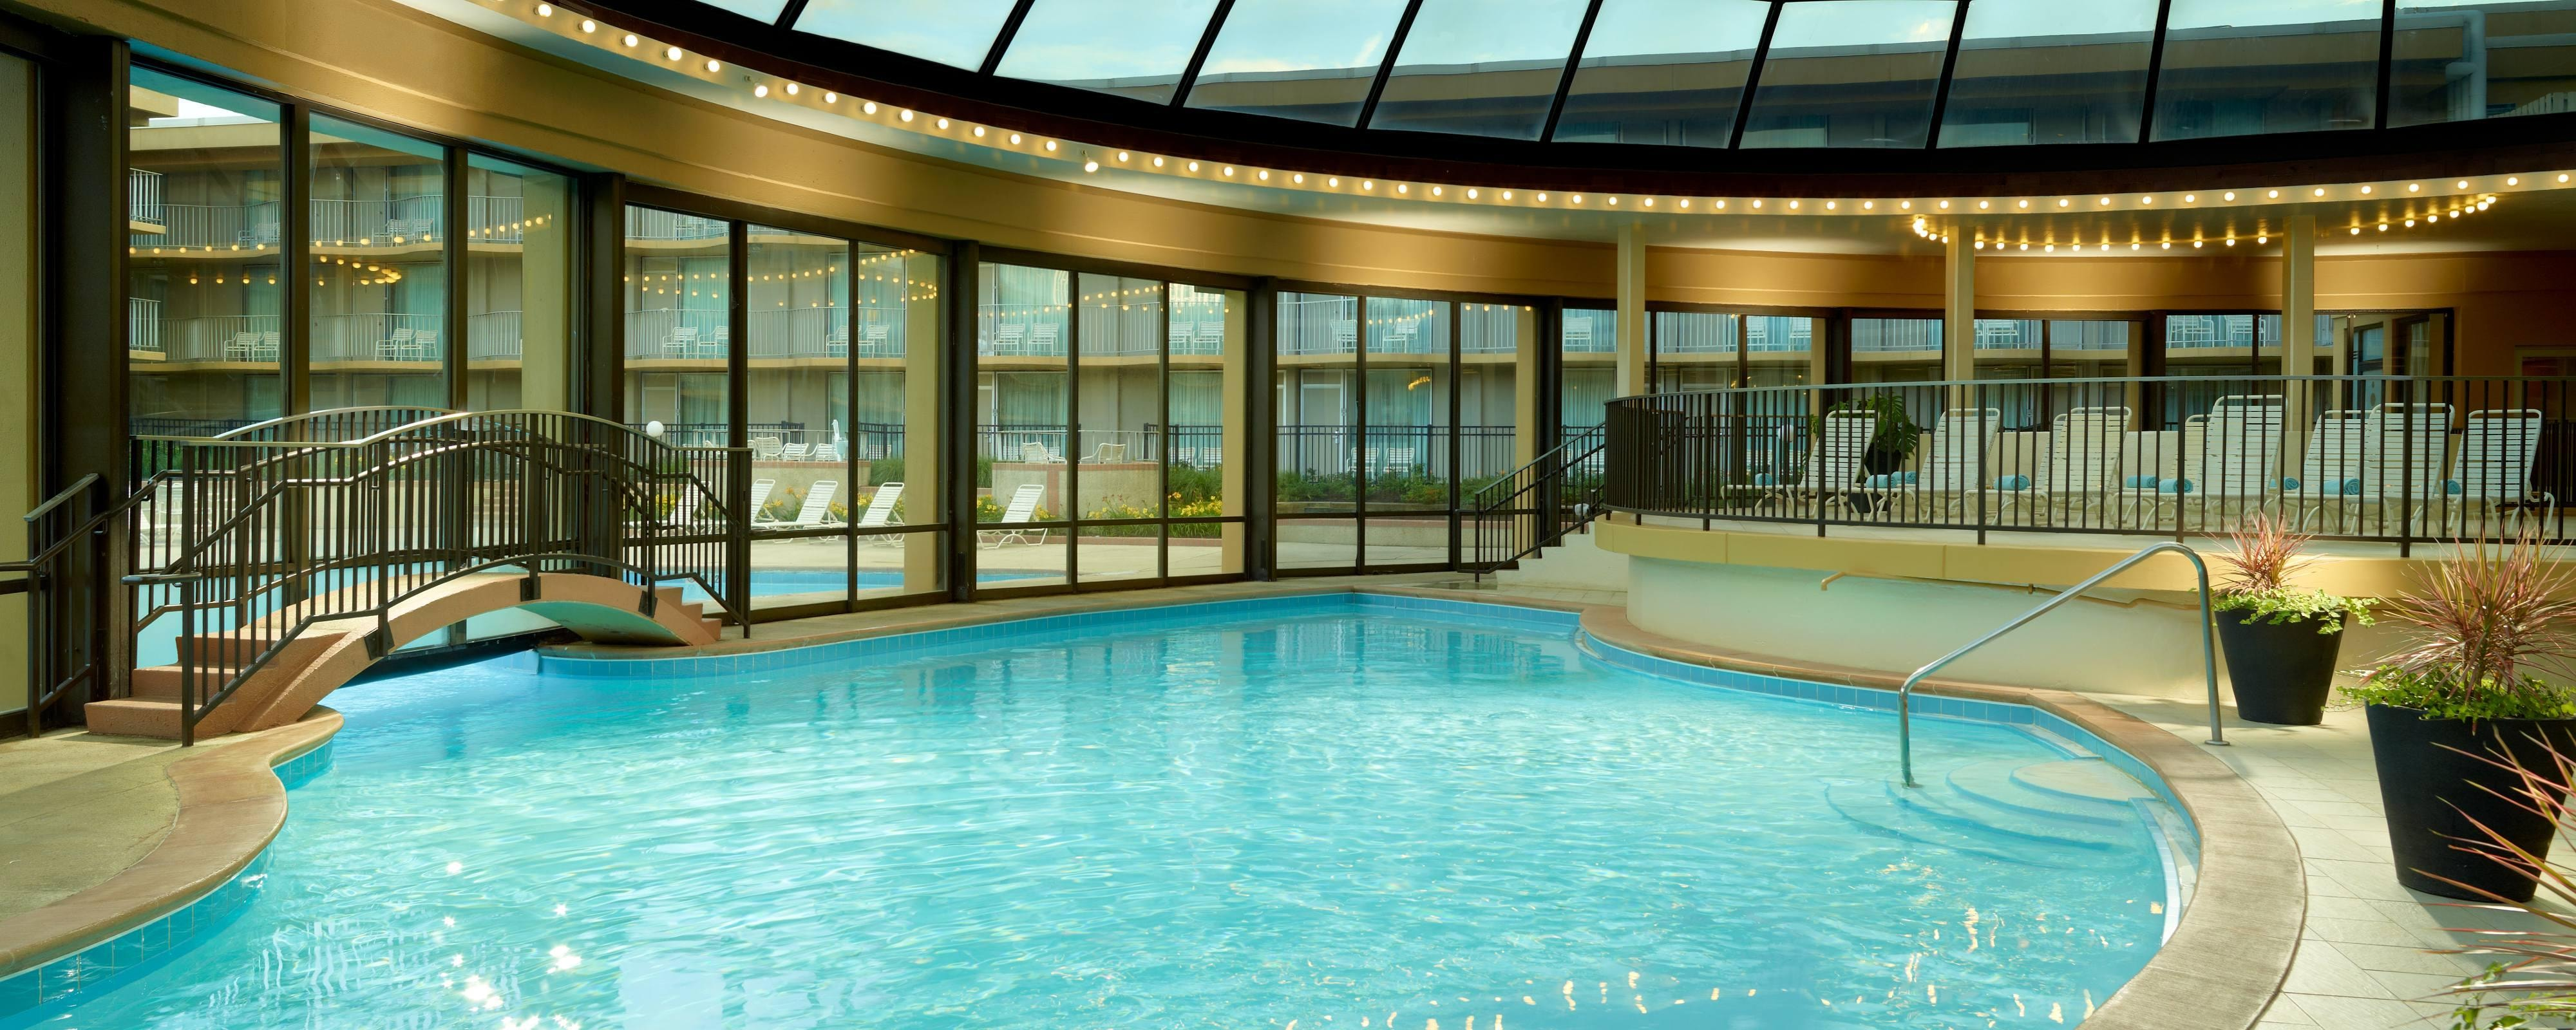 Chicago Hotel With Outdoor Pool Indoor Pool Gym Chicago Marriott O 39 Hare